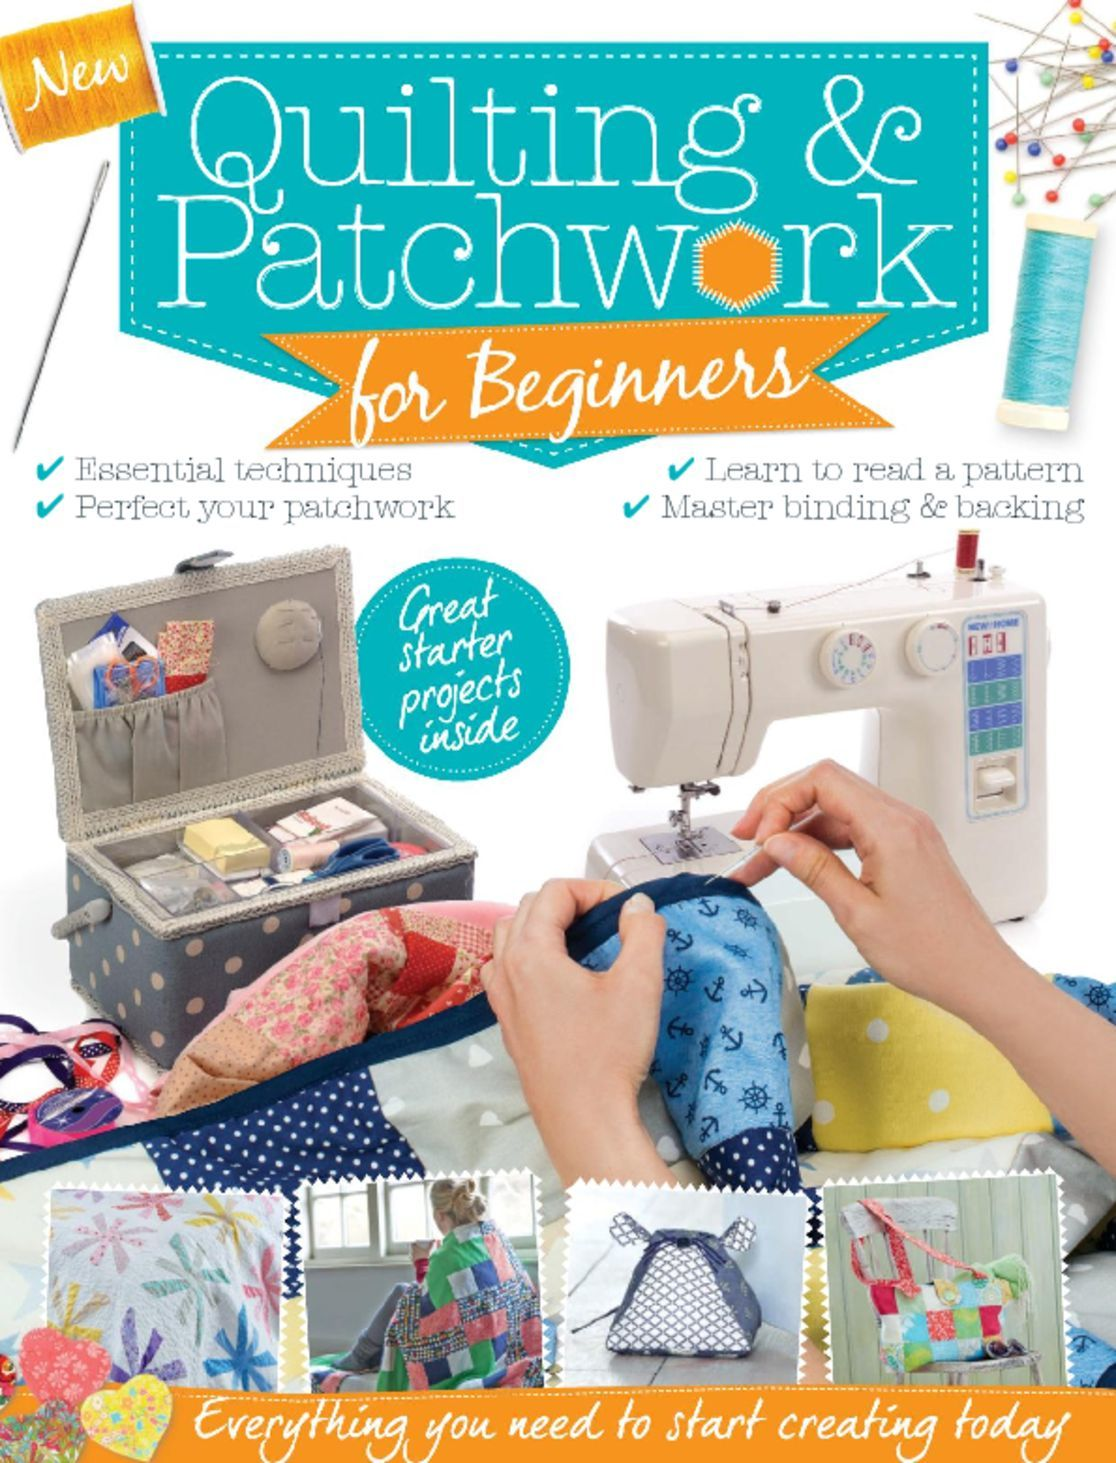 Patchwork Quilting for Beginners Digital